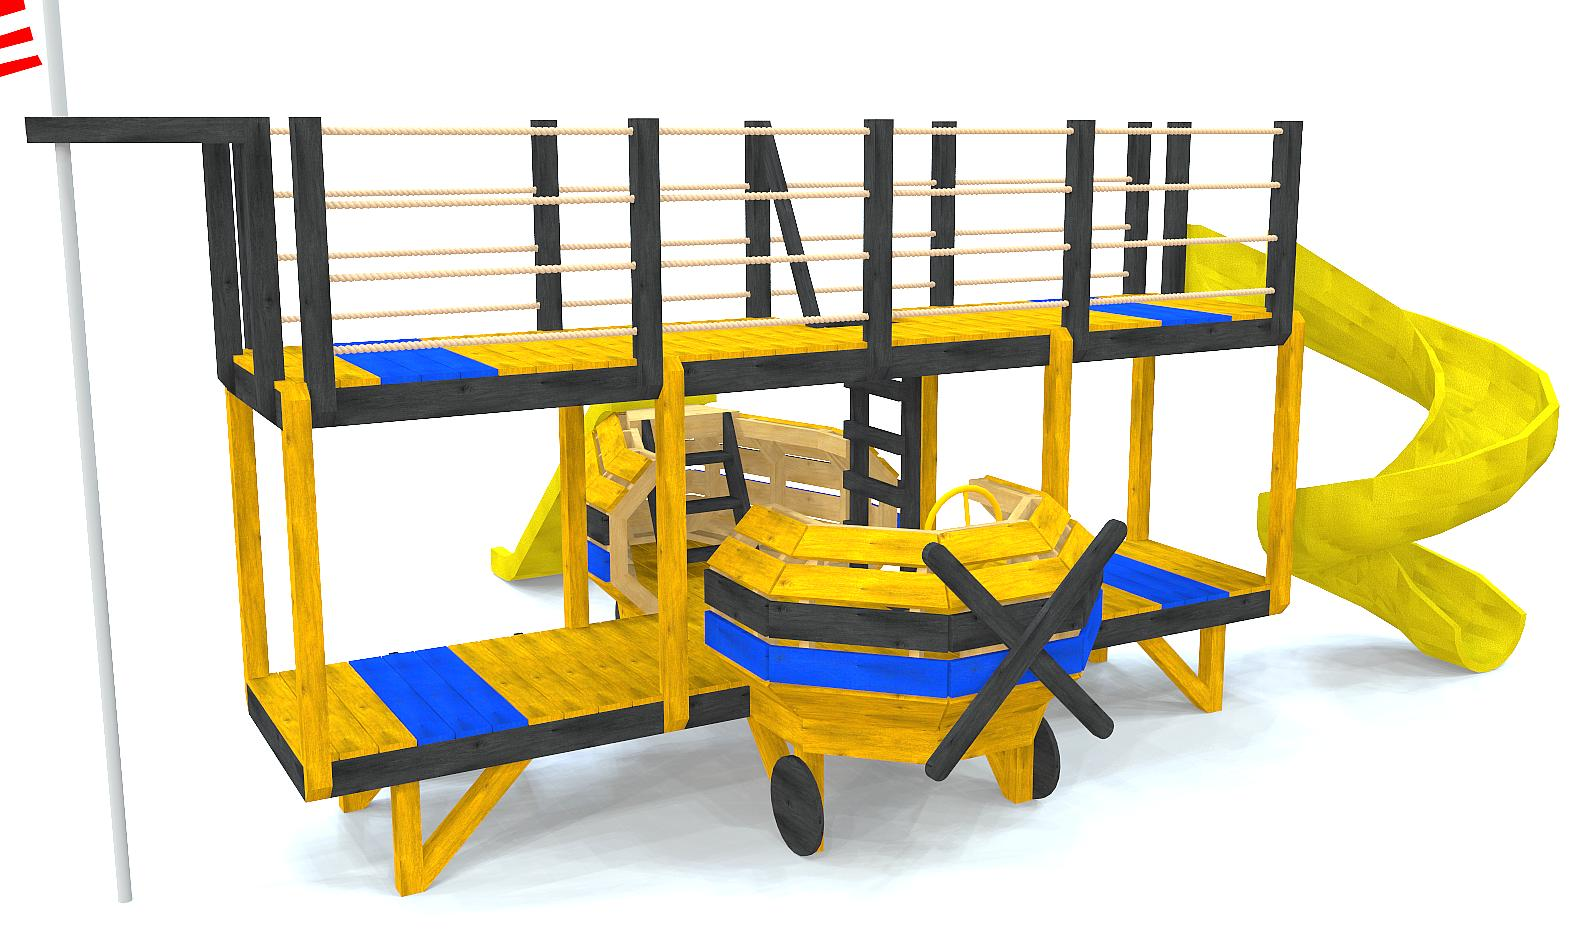 Yellow & blue bi-plane play-set plan with slide and 2nd story